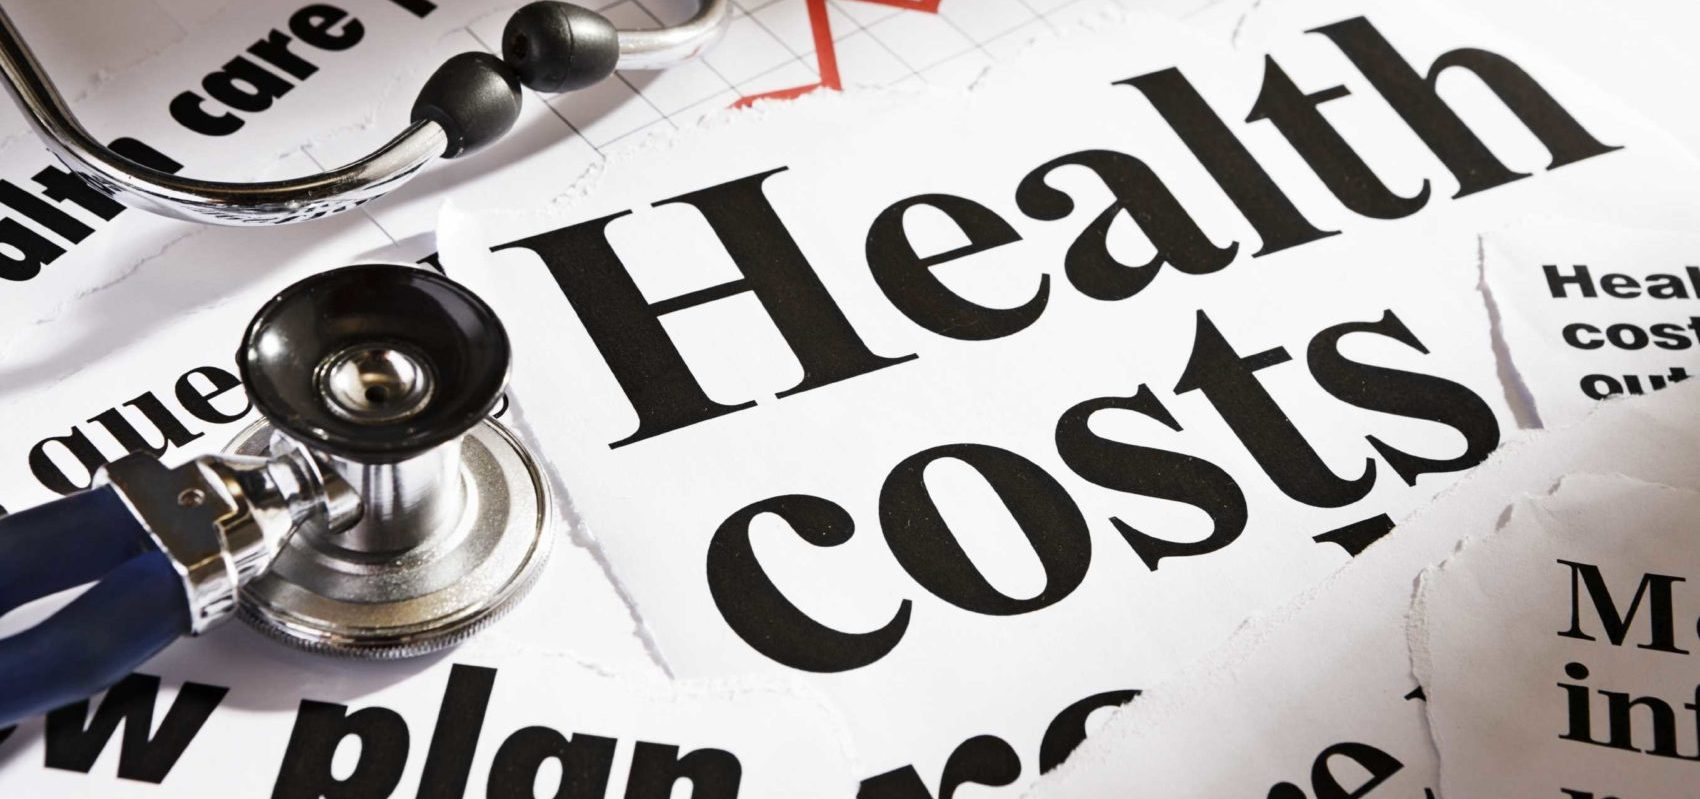 health-costs-e1561611113837.jpg